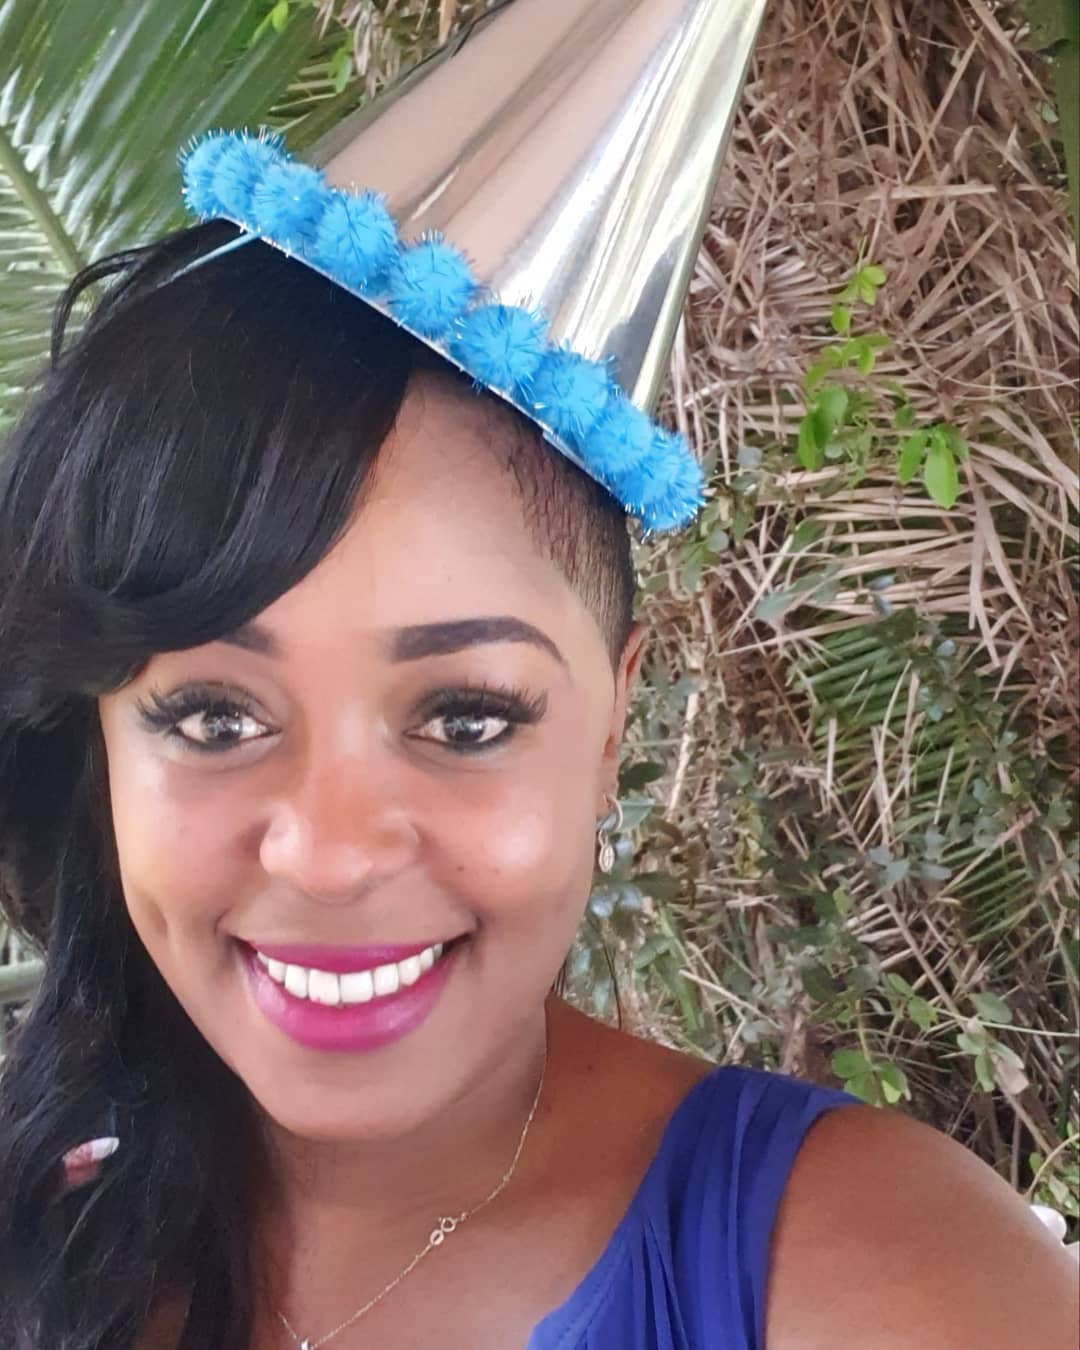 67362700 388169275390976 329697647348752510 n - Lillian Muli's ageless mother graces her son with Jared Nevaton's birthday